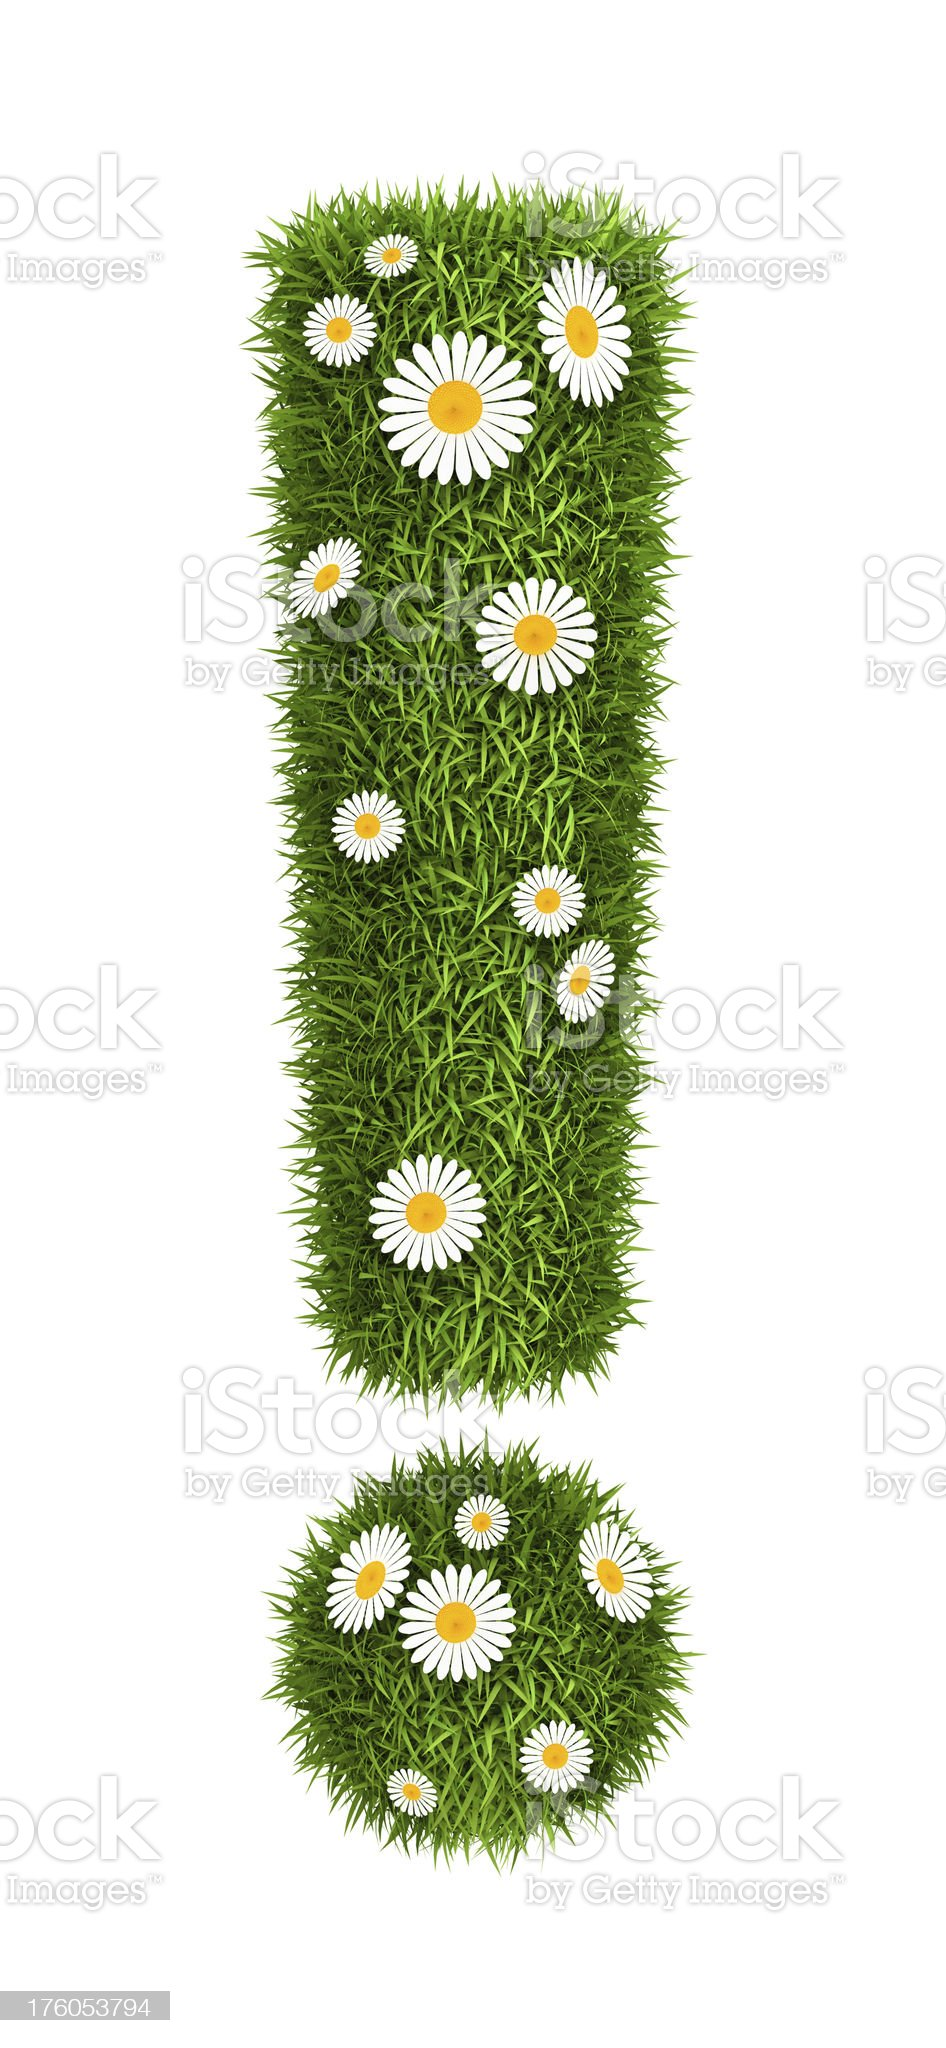 Natural grass exclamation royalty-free stock photo